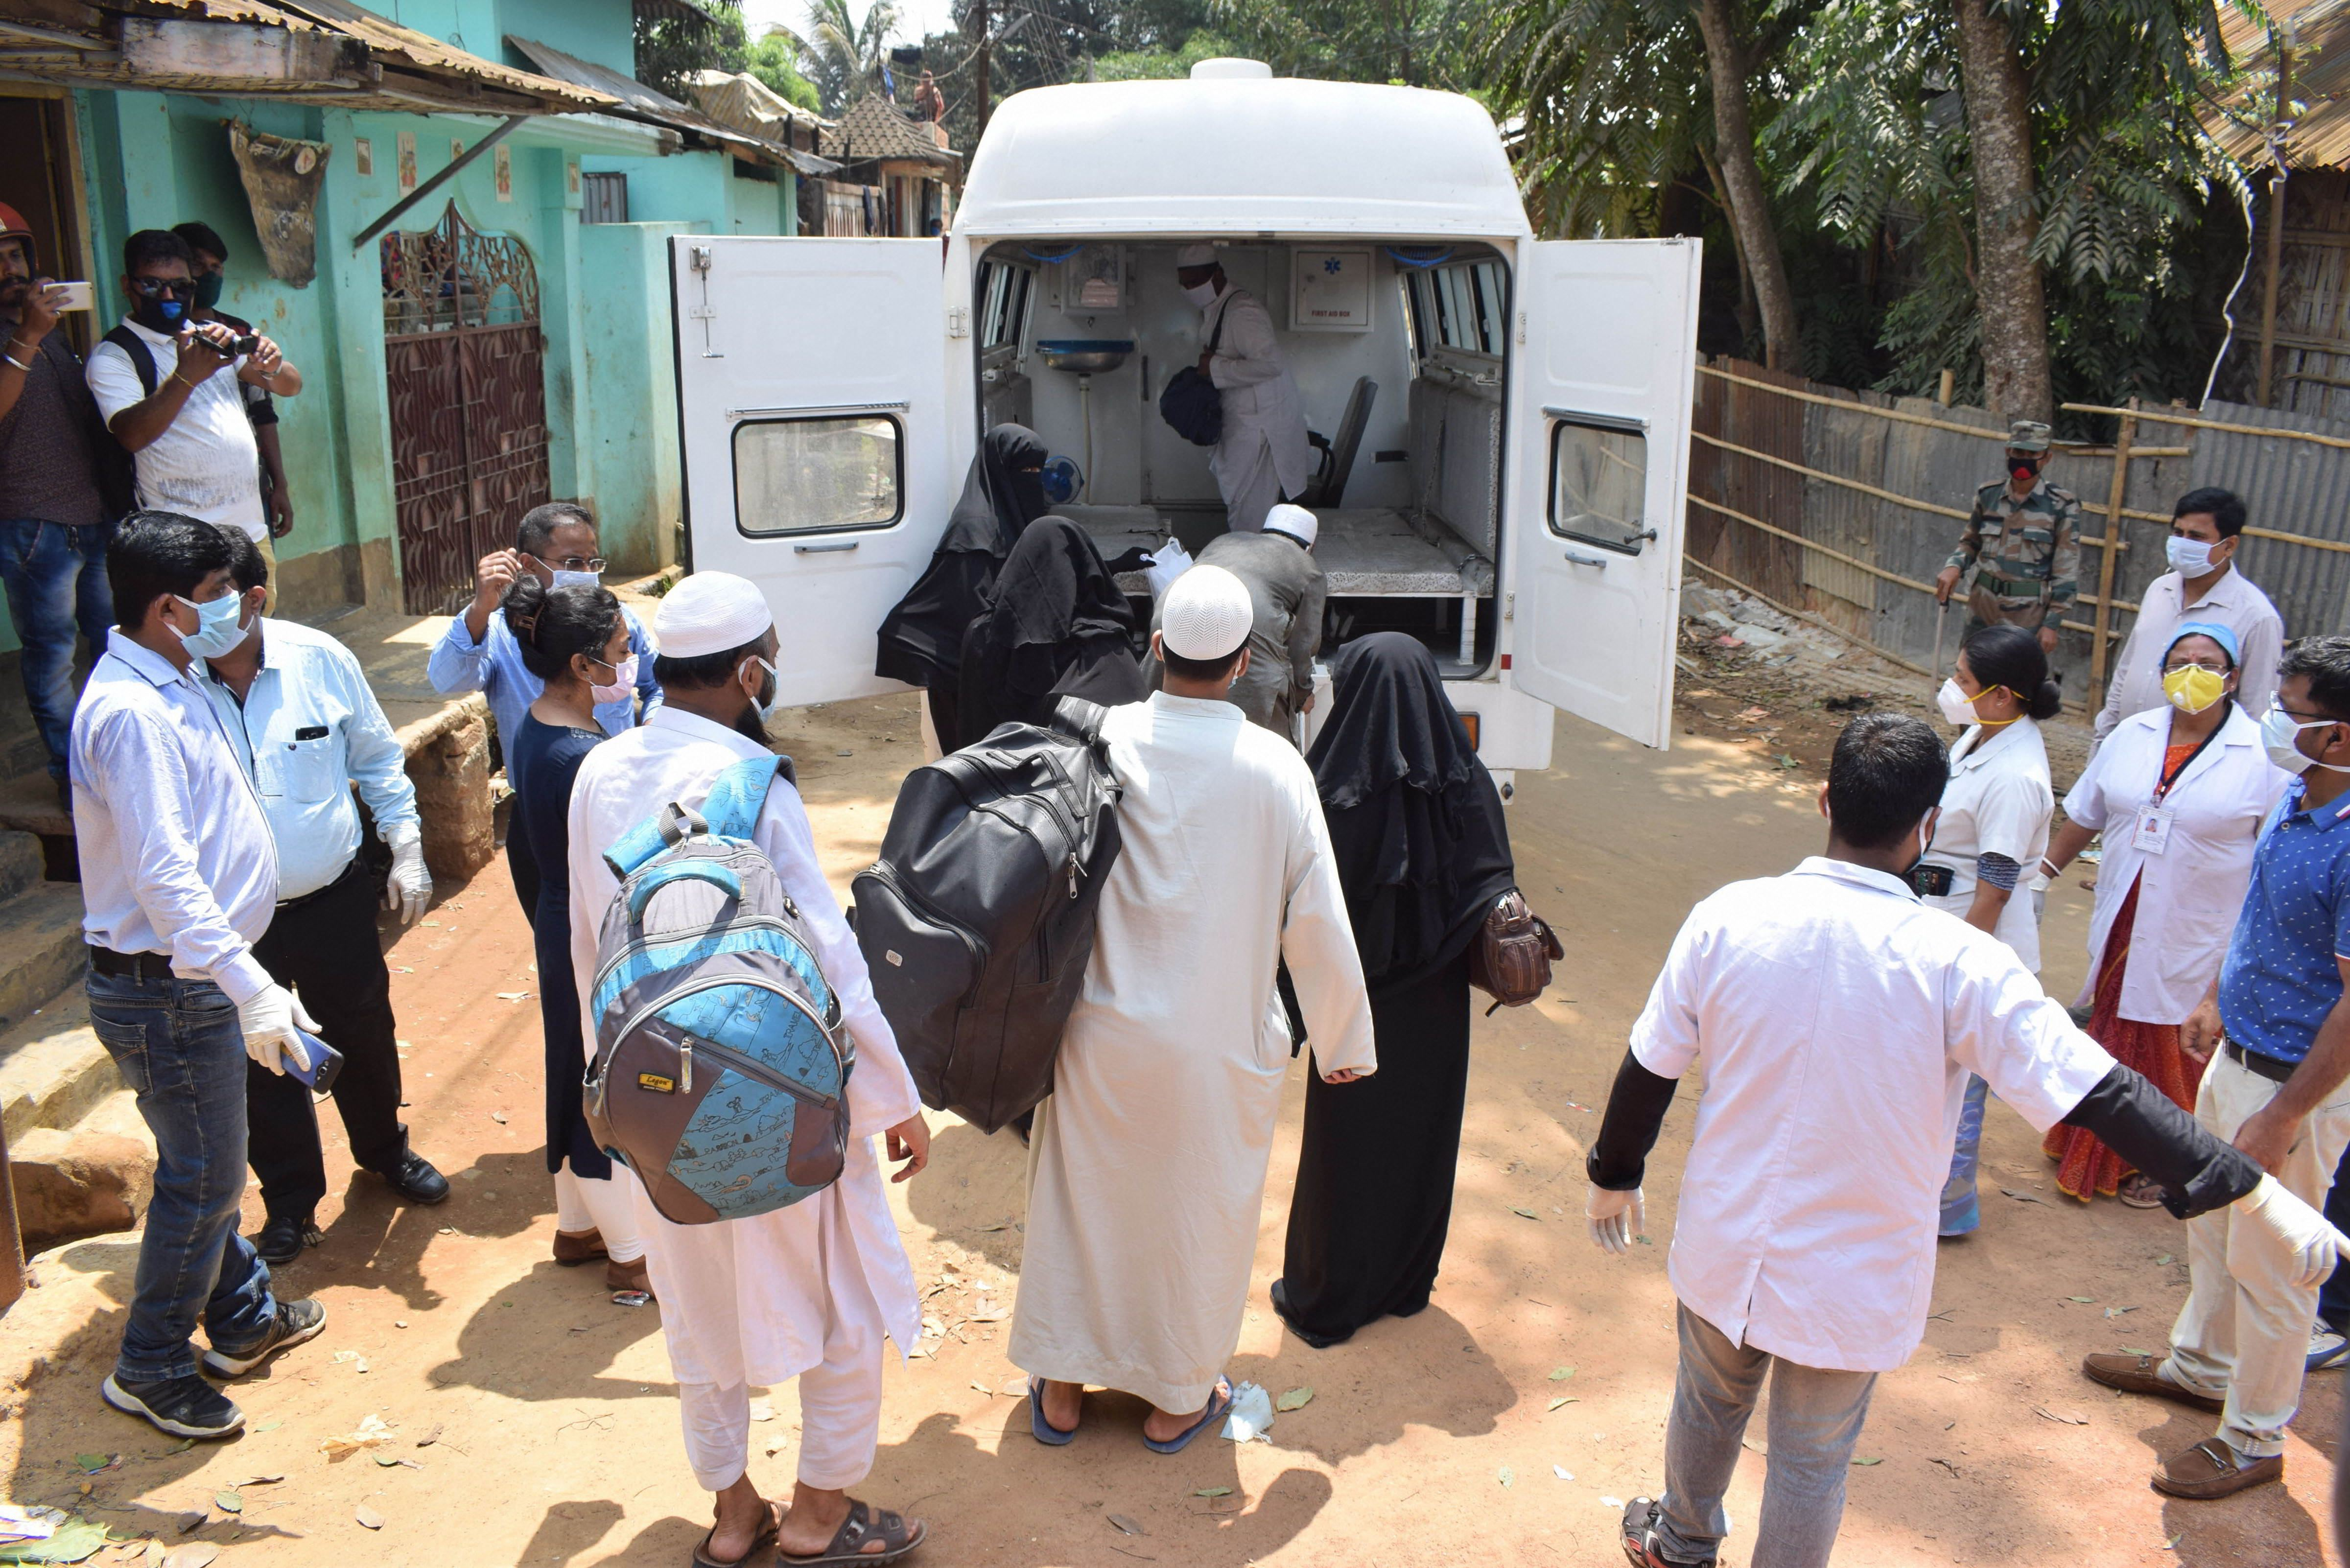 Attendees of a religious congregation in Delhi's Nizamuddin area board an ambulance for mandatory Covid-19 tests during a nationwide lockdown in the wake of the coronavirus outbreak, in Agartala, Saturday, April 4, 2020.